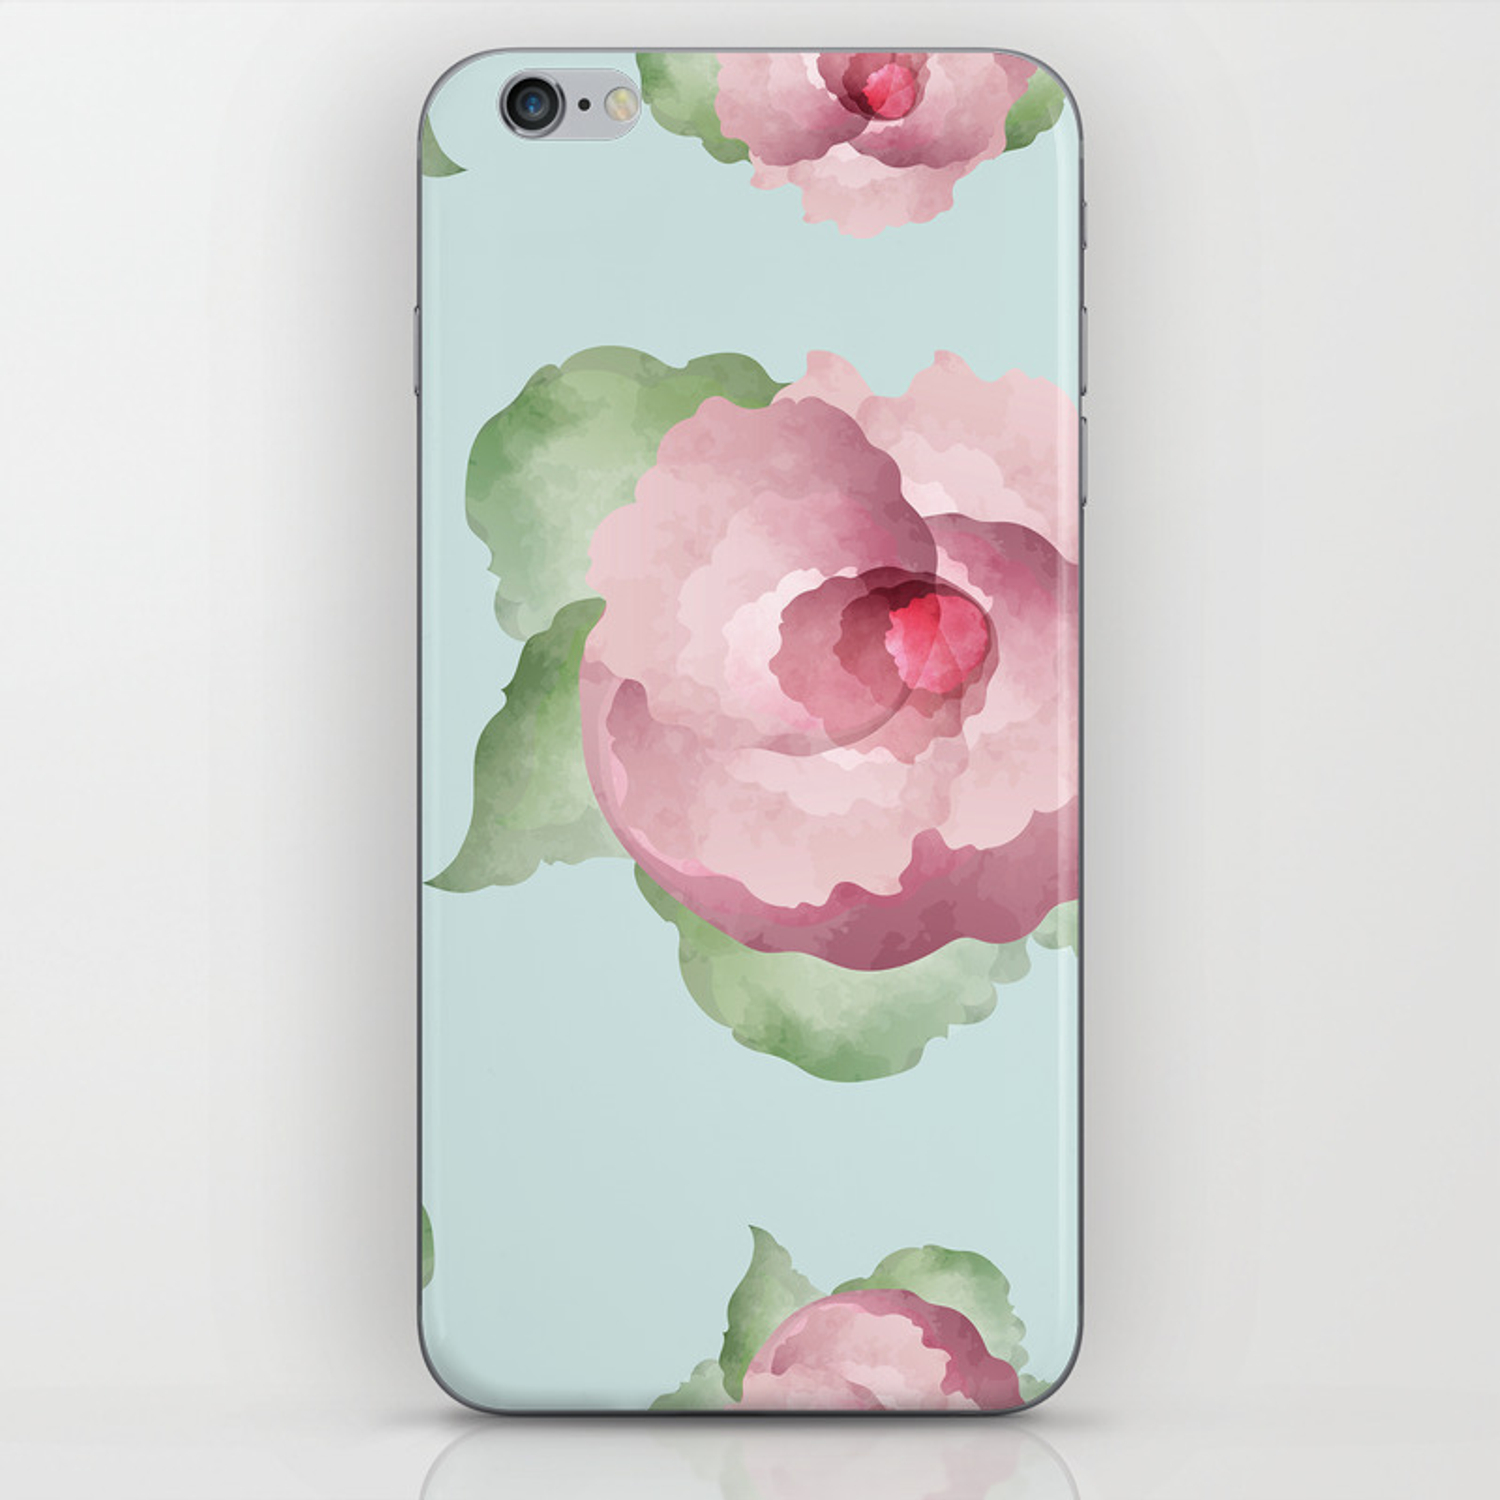 Watercolor Floral Background Iphone Skin By Olgaaltunina Society6